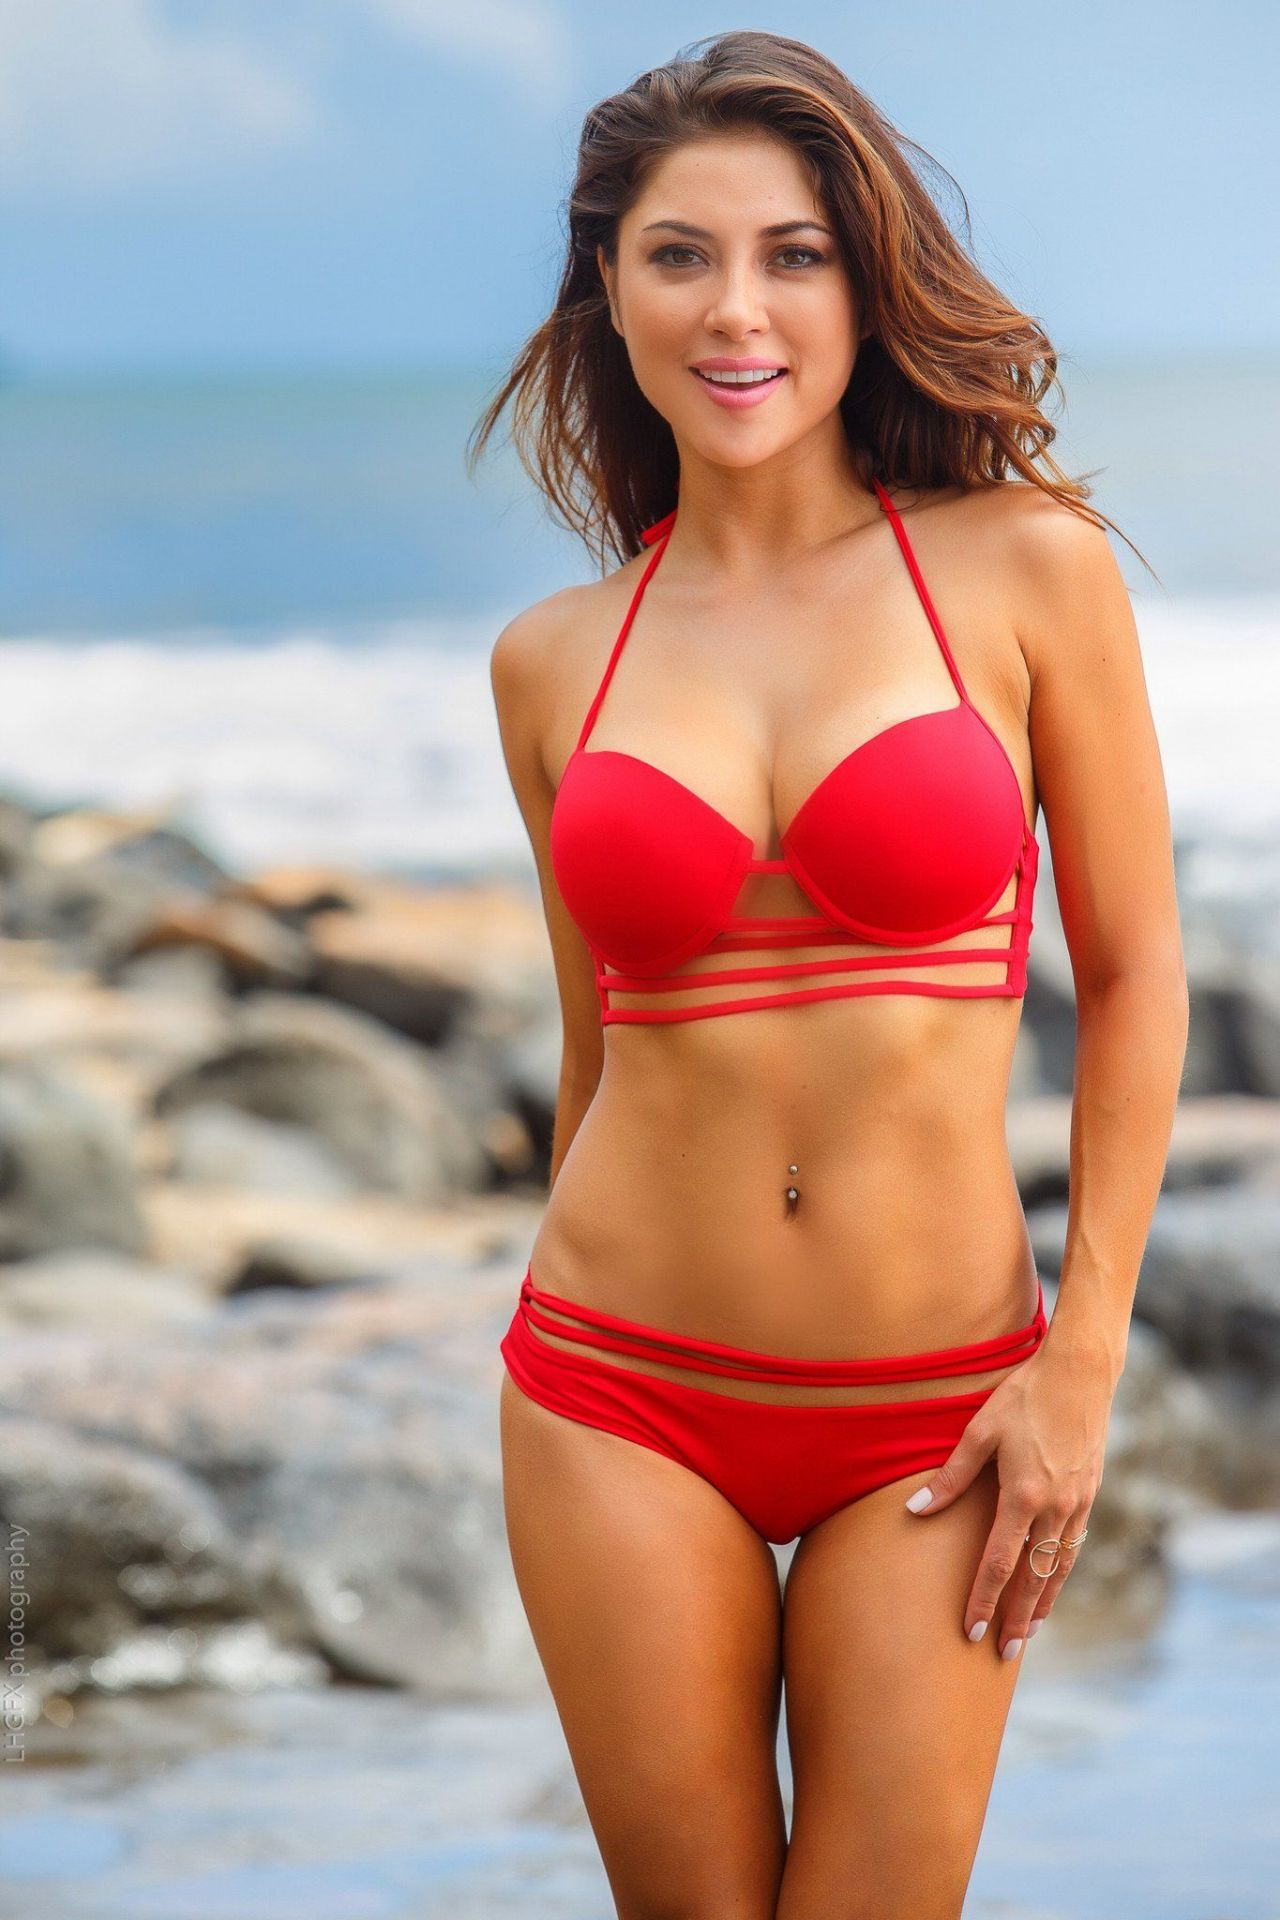 arianny-celeste-solkissed-swimwear-2015-sol-gypsy-collection_1